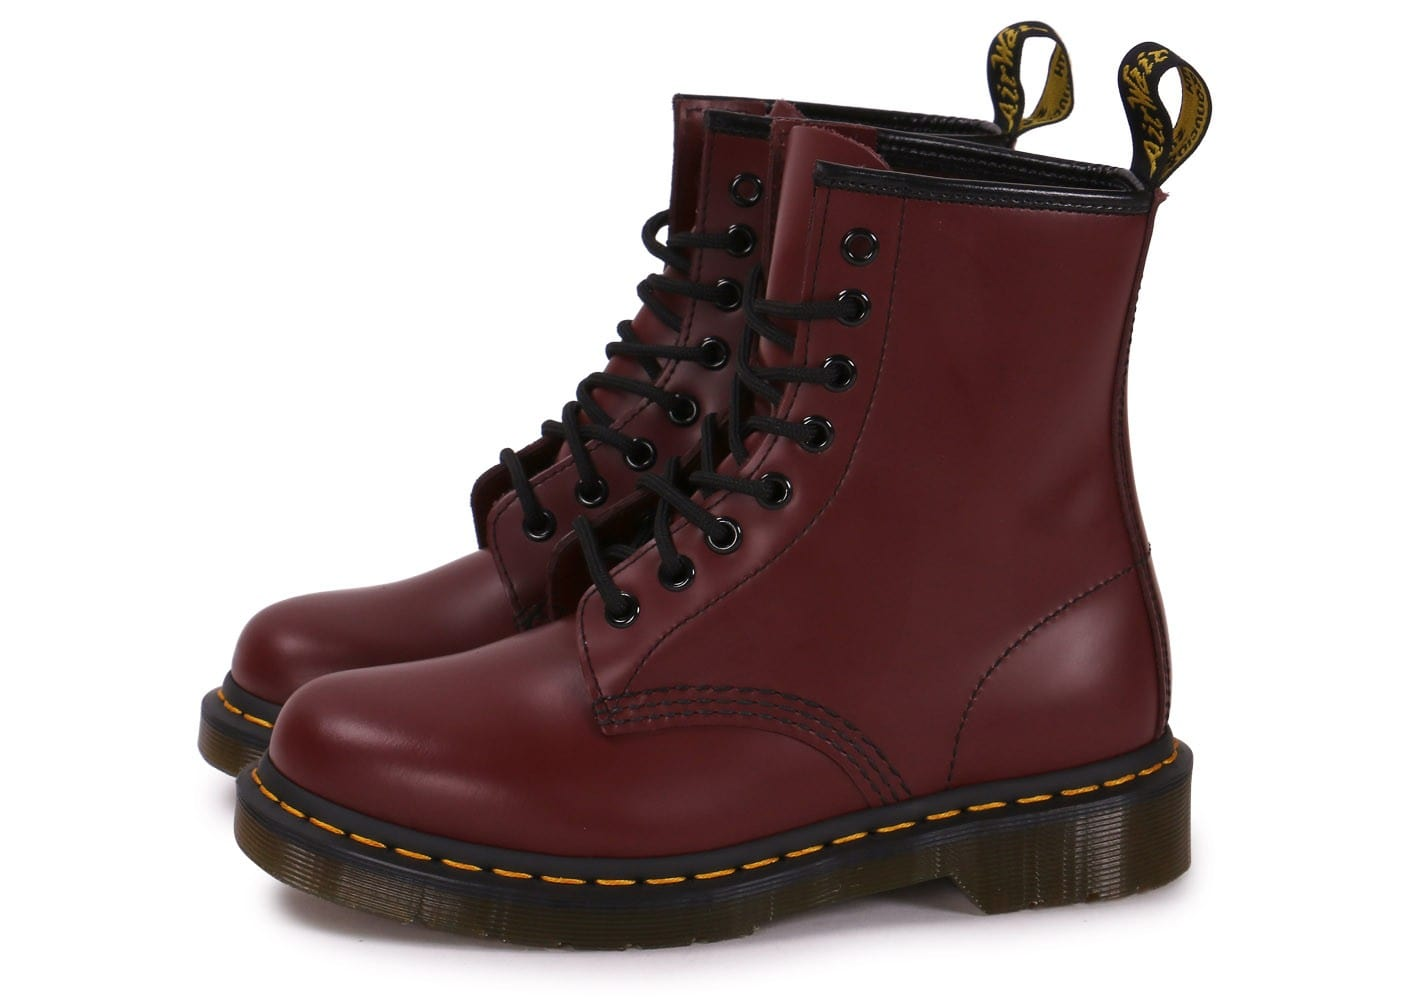 dr martens 1460 cherry red chaussures black friday chausport. Black Bedroom Furniture Sets. Home Design Ideas